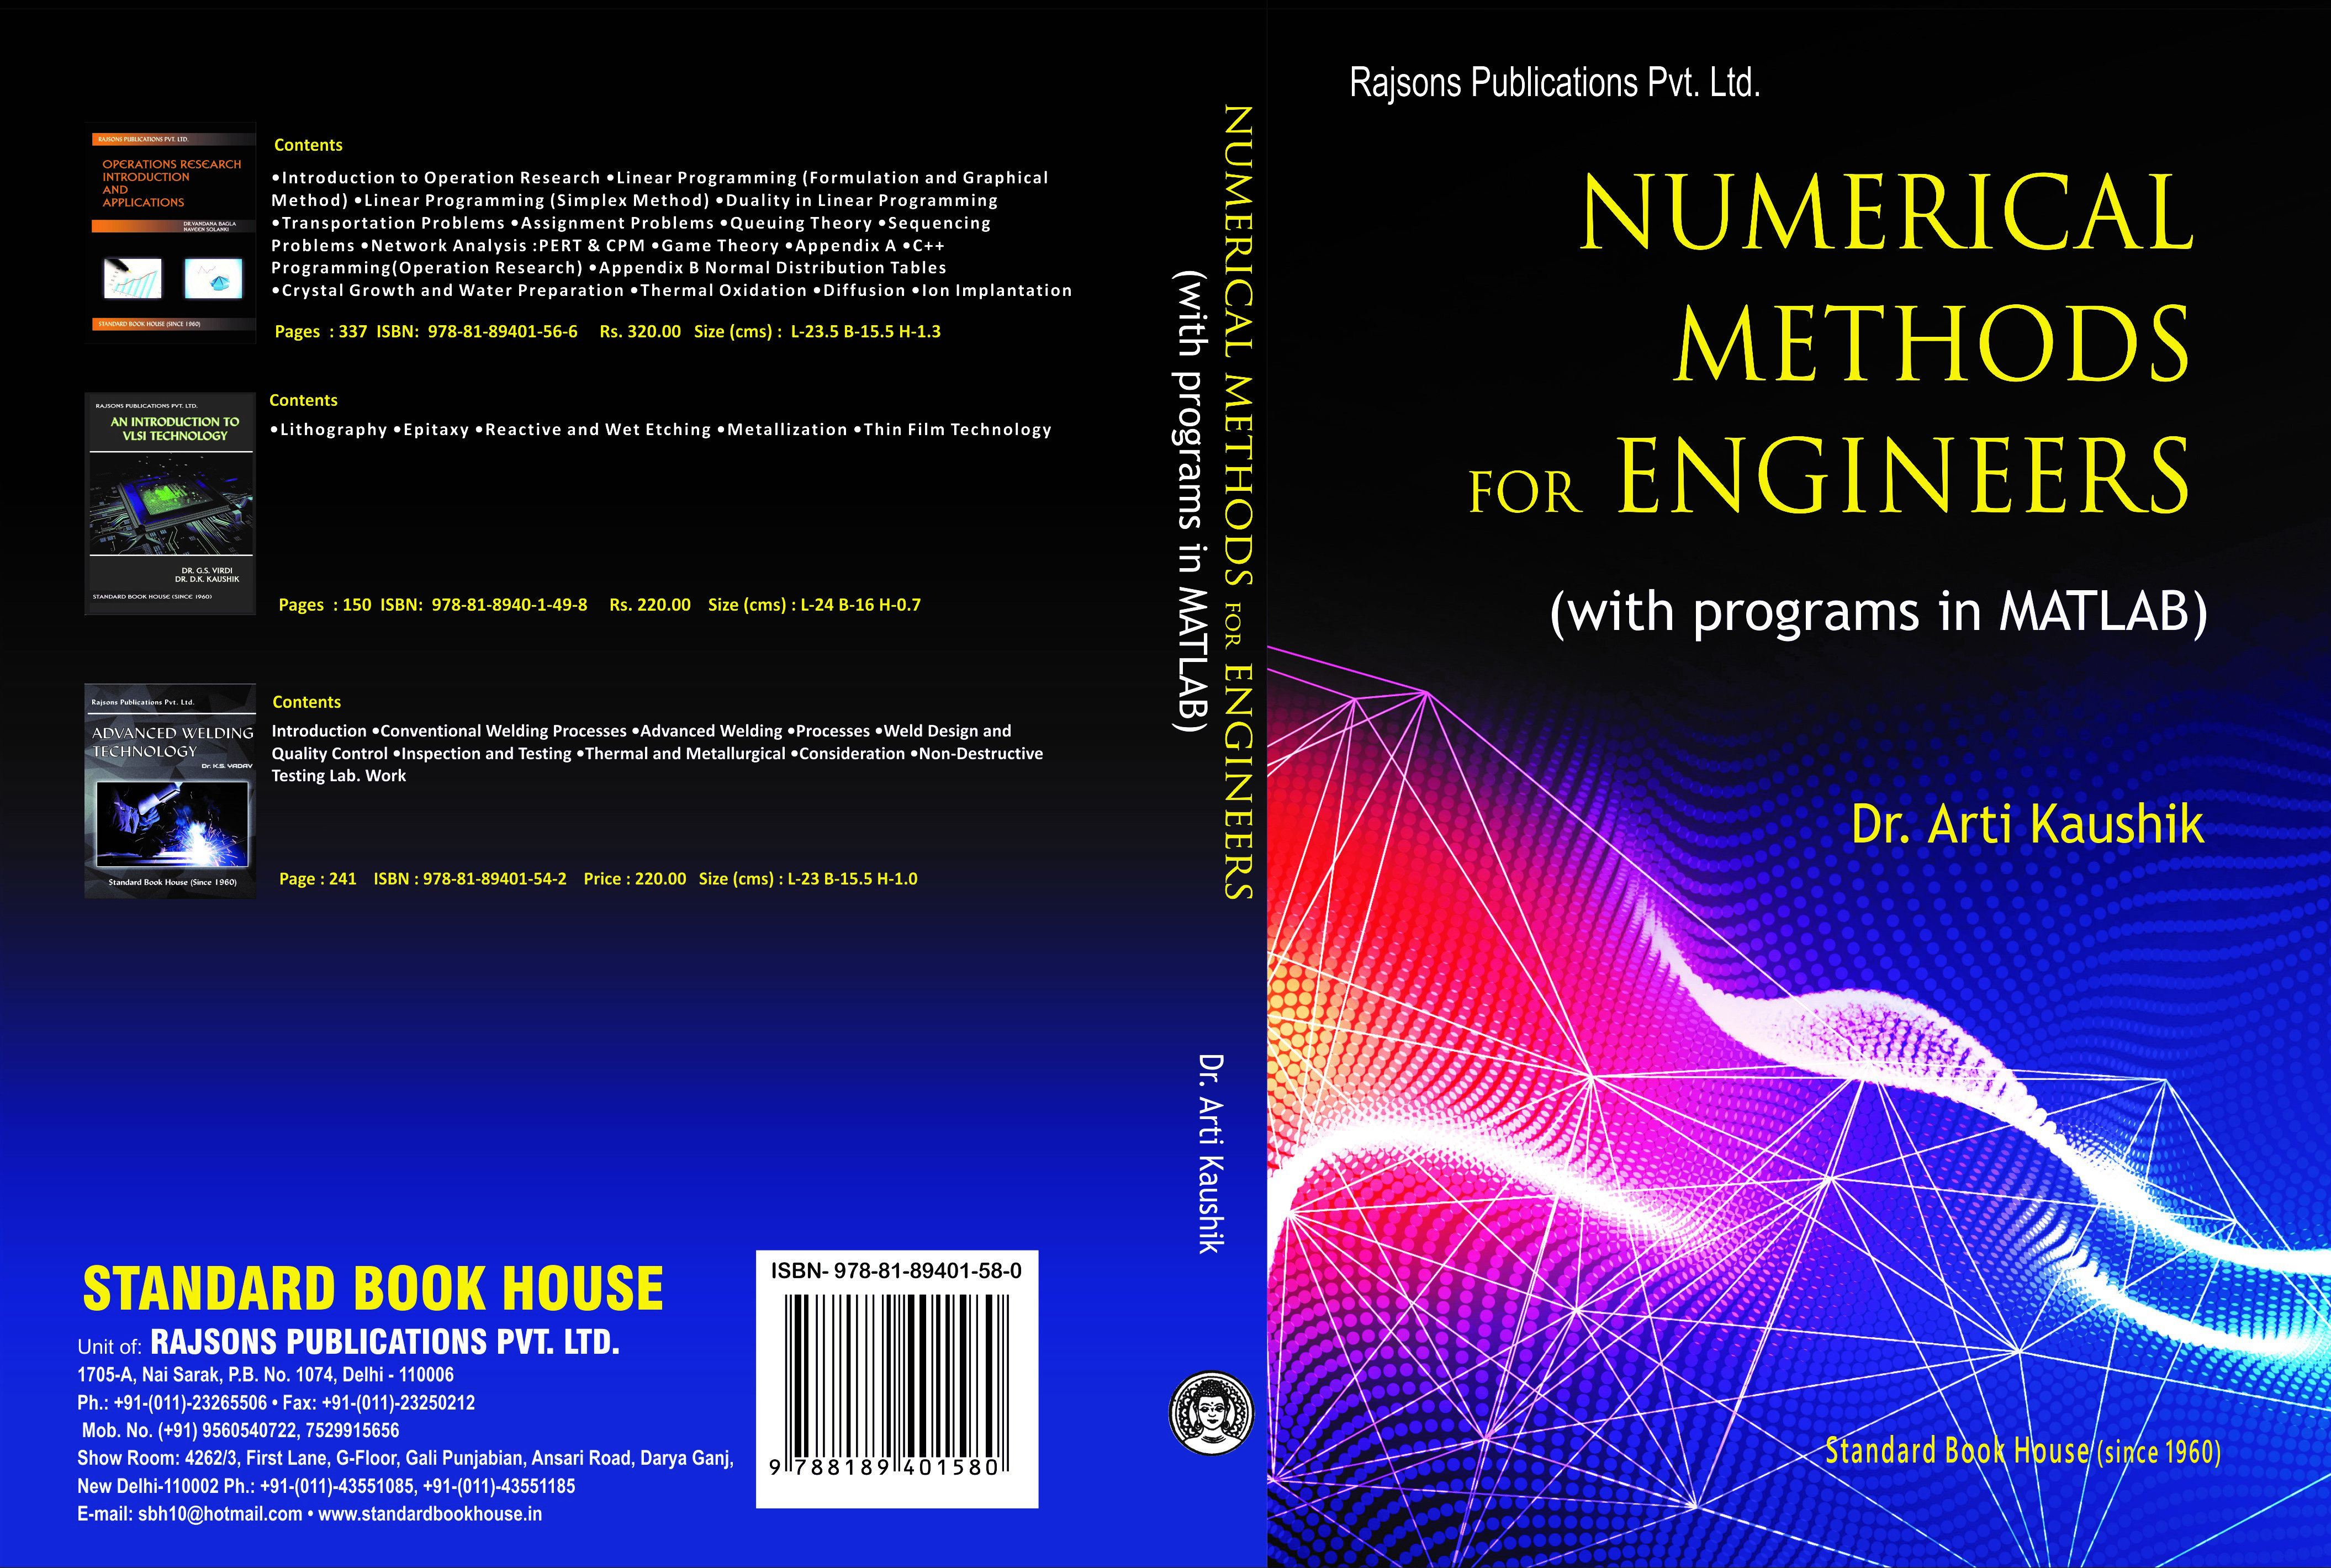 Numerical Methods For Engineers (with programs in MATLAB)